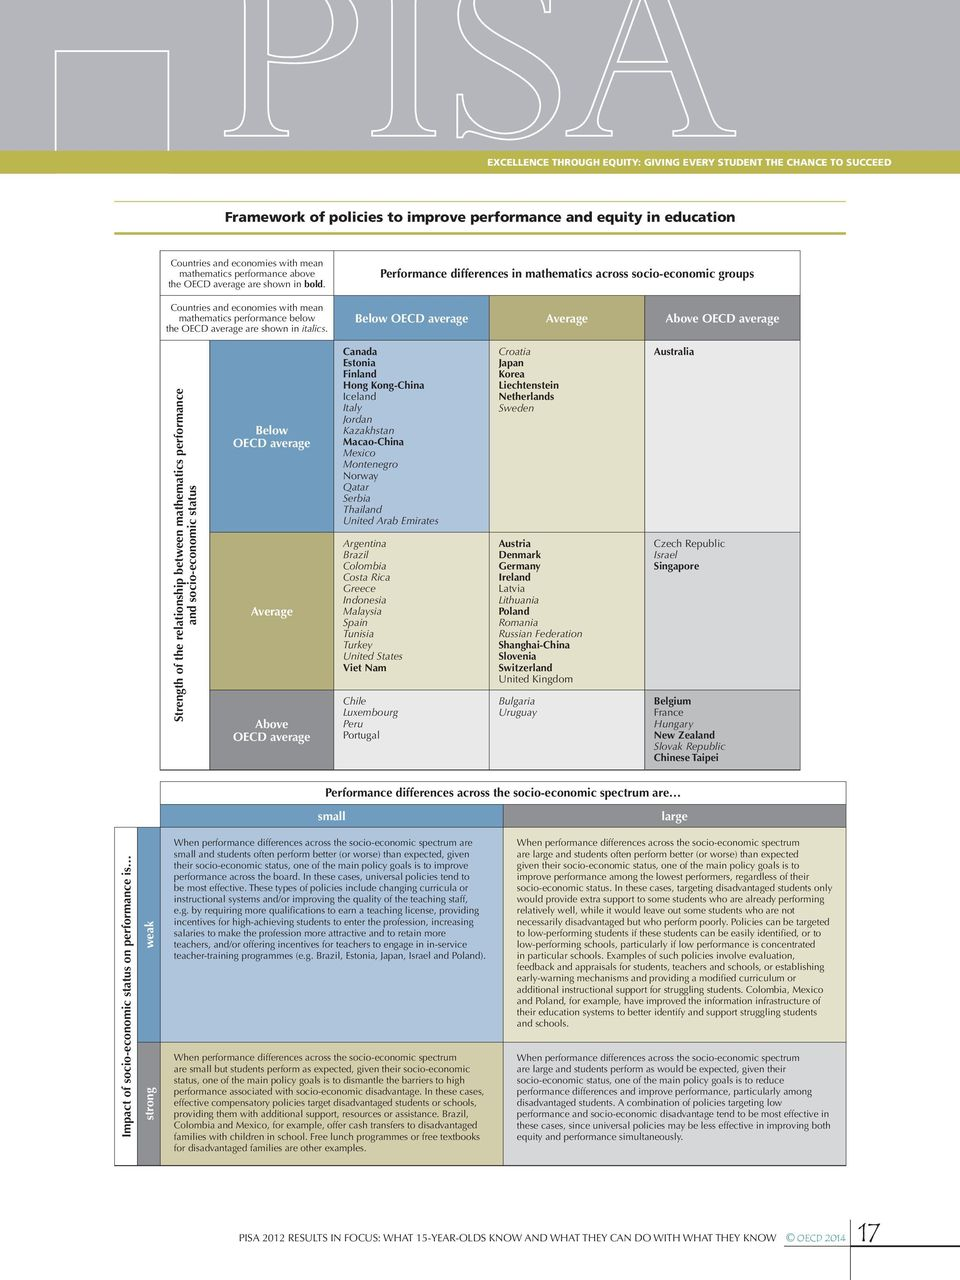 Performance differences in mathematics across socio-economic groups Below OECD average Average Above OECD average Strength of the relationship between mathematics performance and socio-economic